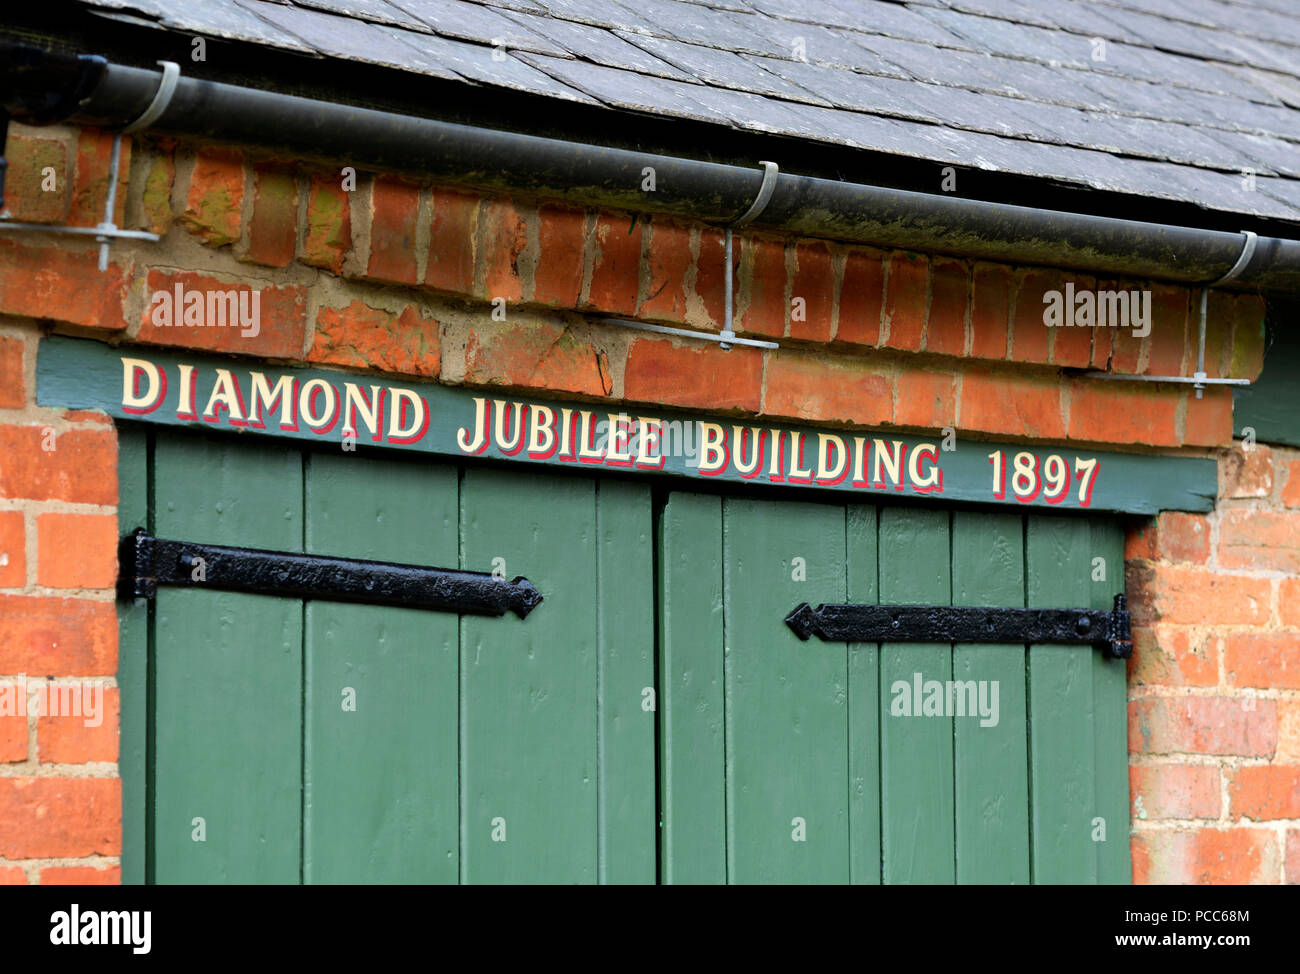 The Diamond Jubilee Building (the Old Coal Barn and Old Fire Engine House), Guilsborough, Northamptonshire, England, UK - Stock Image